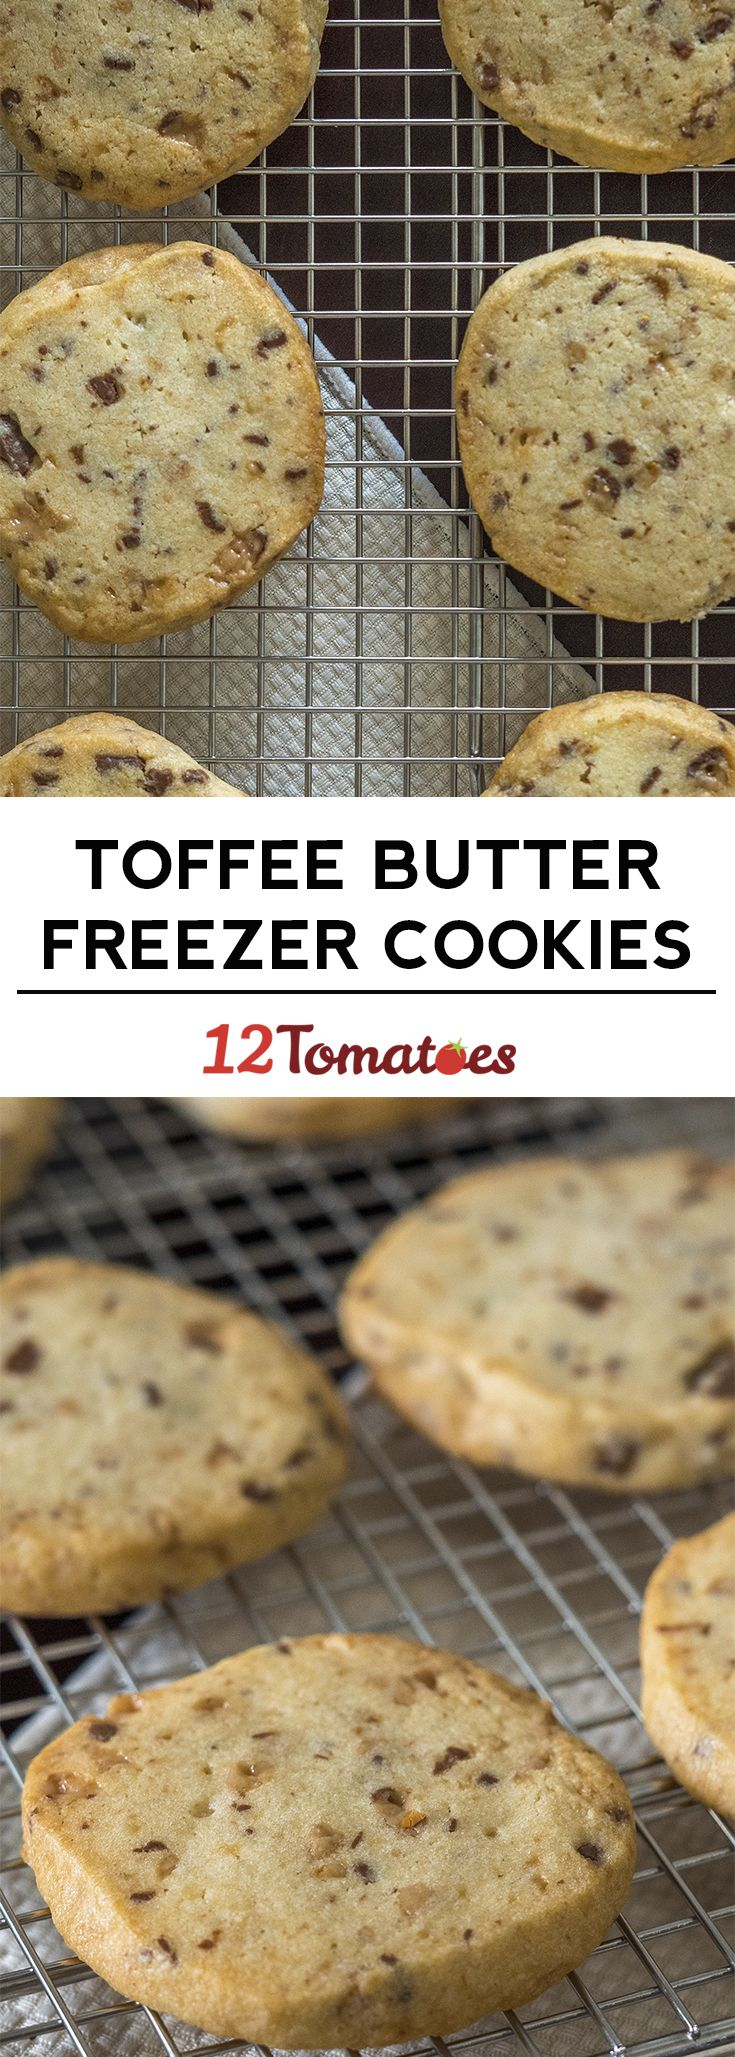 Toffee Butter Freezer Cookies                                                                                                                                                                                 More